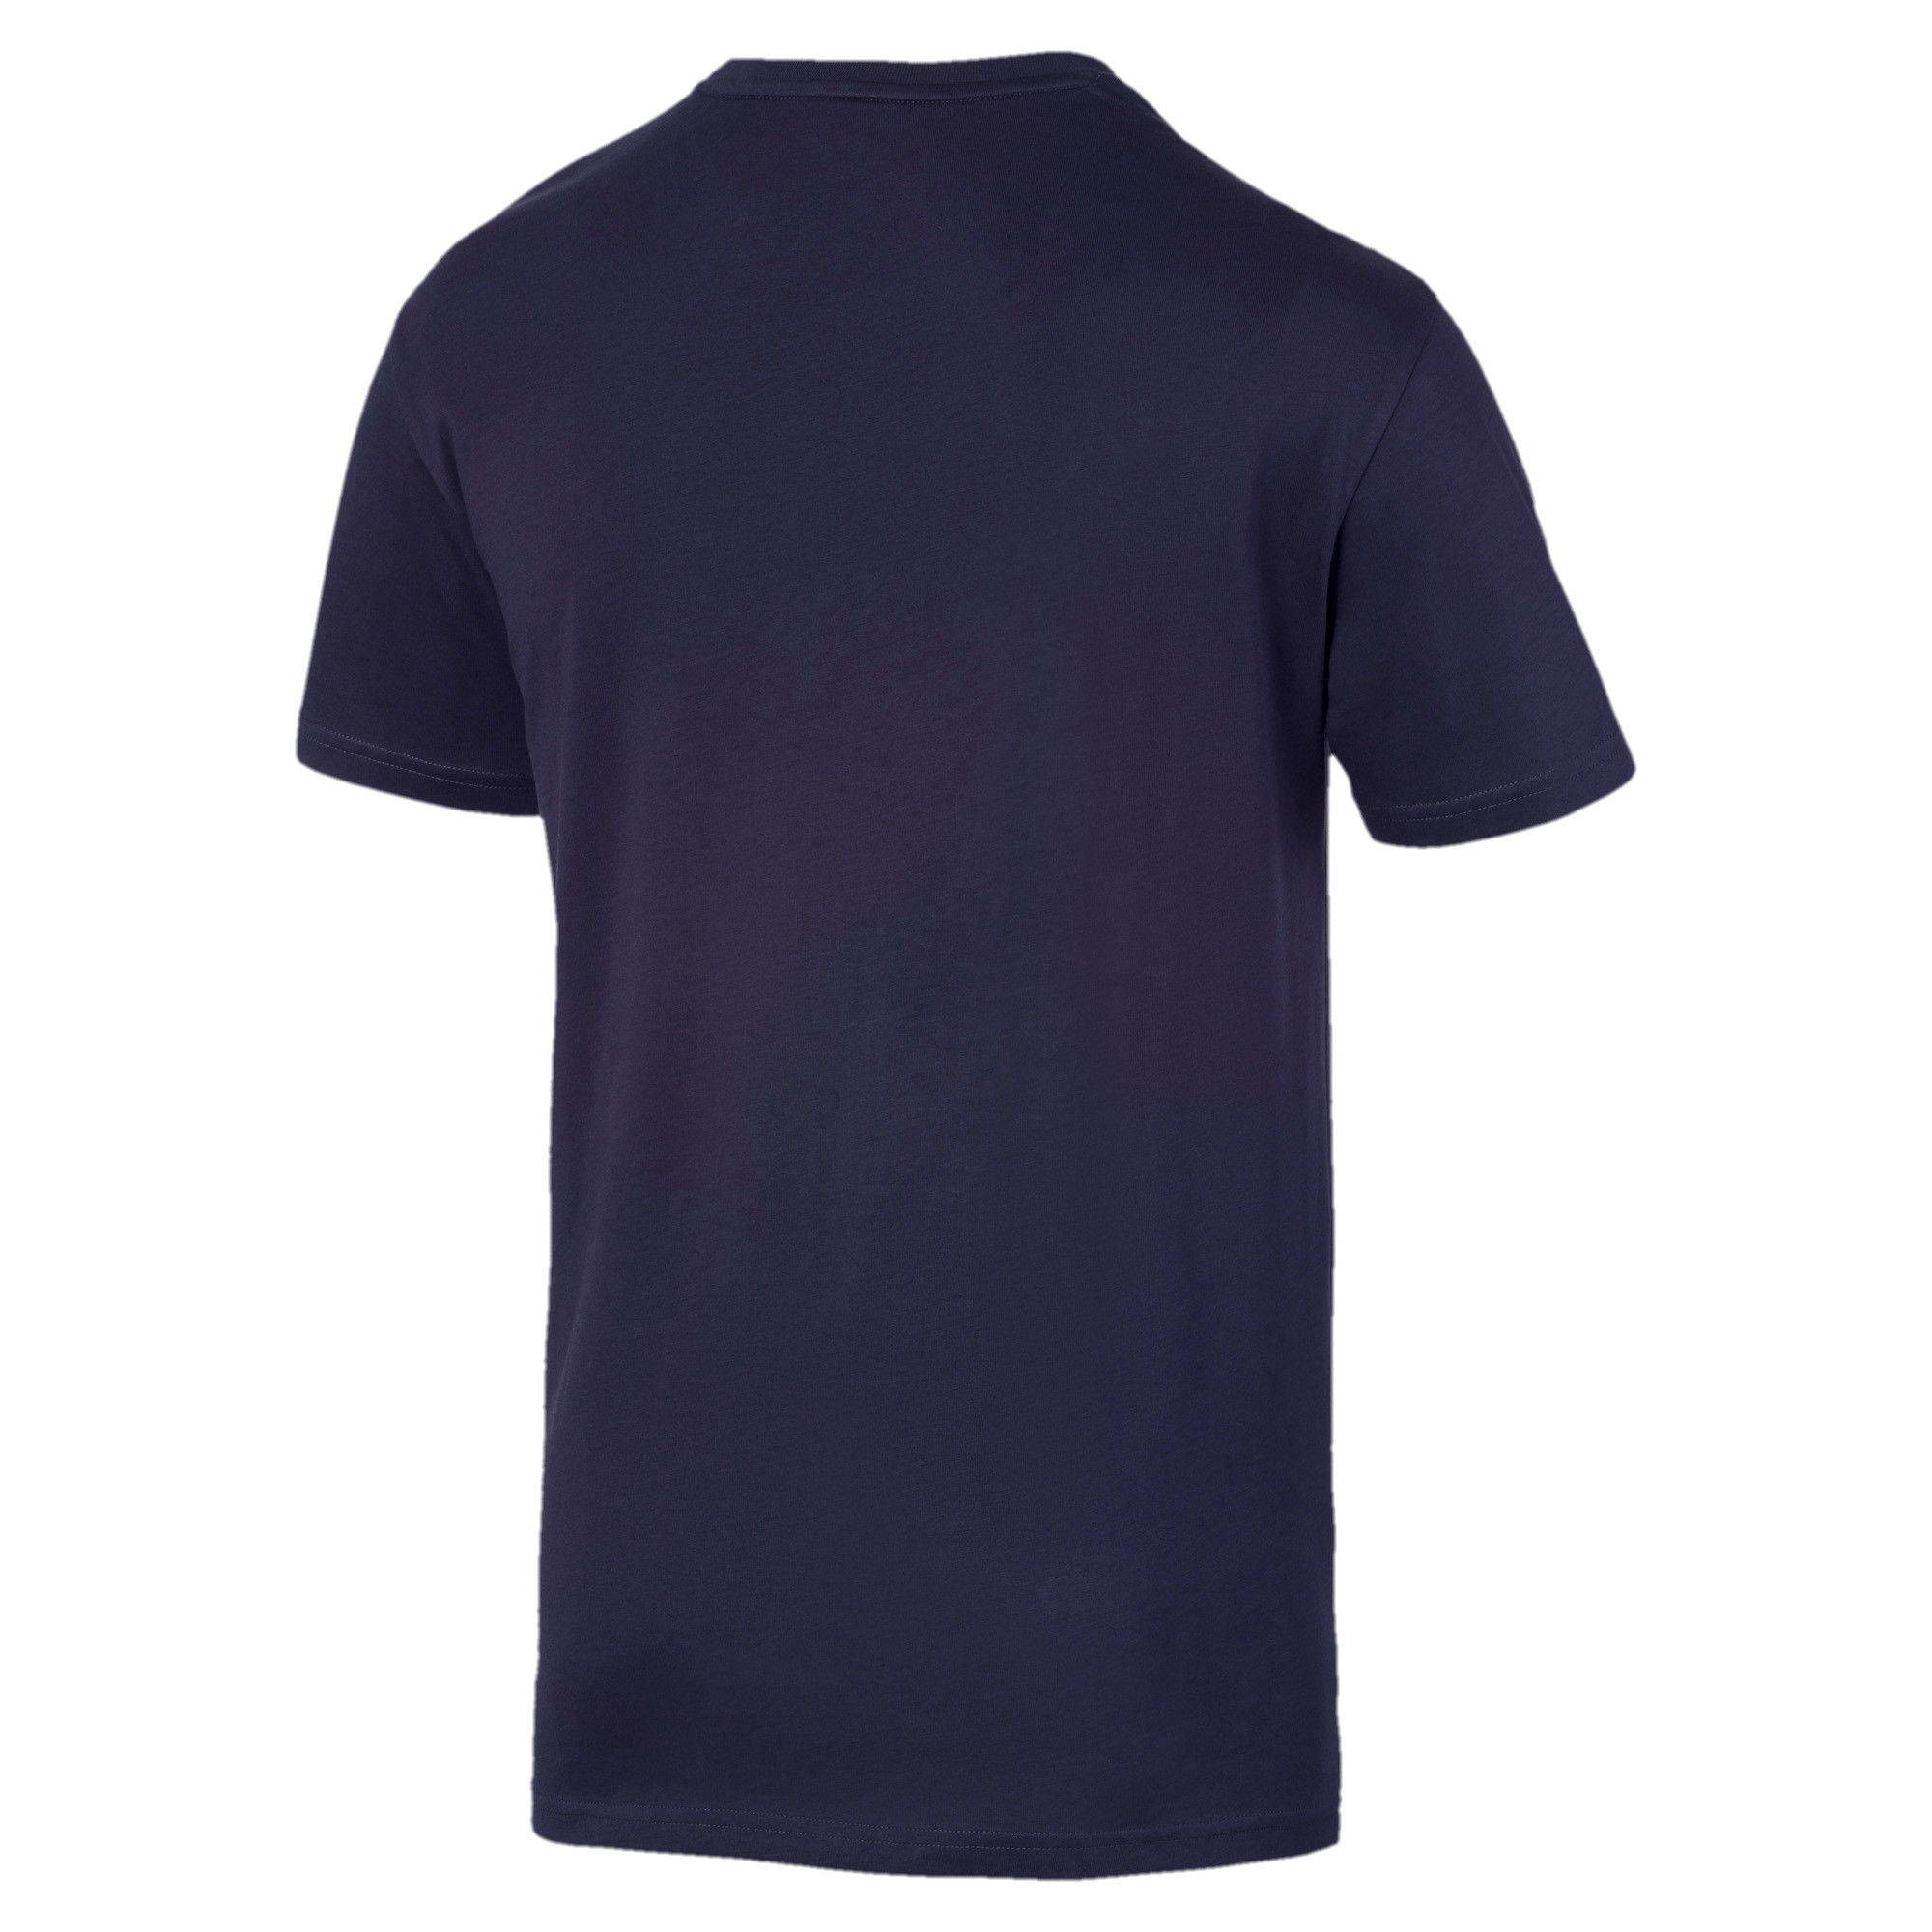 PUMA-Rebel-Bold-Men-039-s-Tee-Men-Tee-Basics thumbnail 12